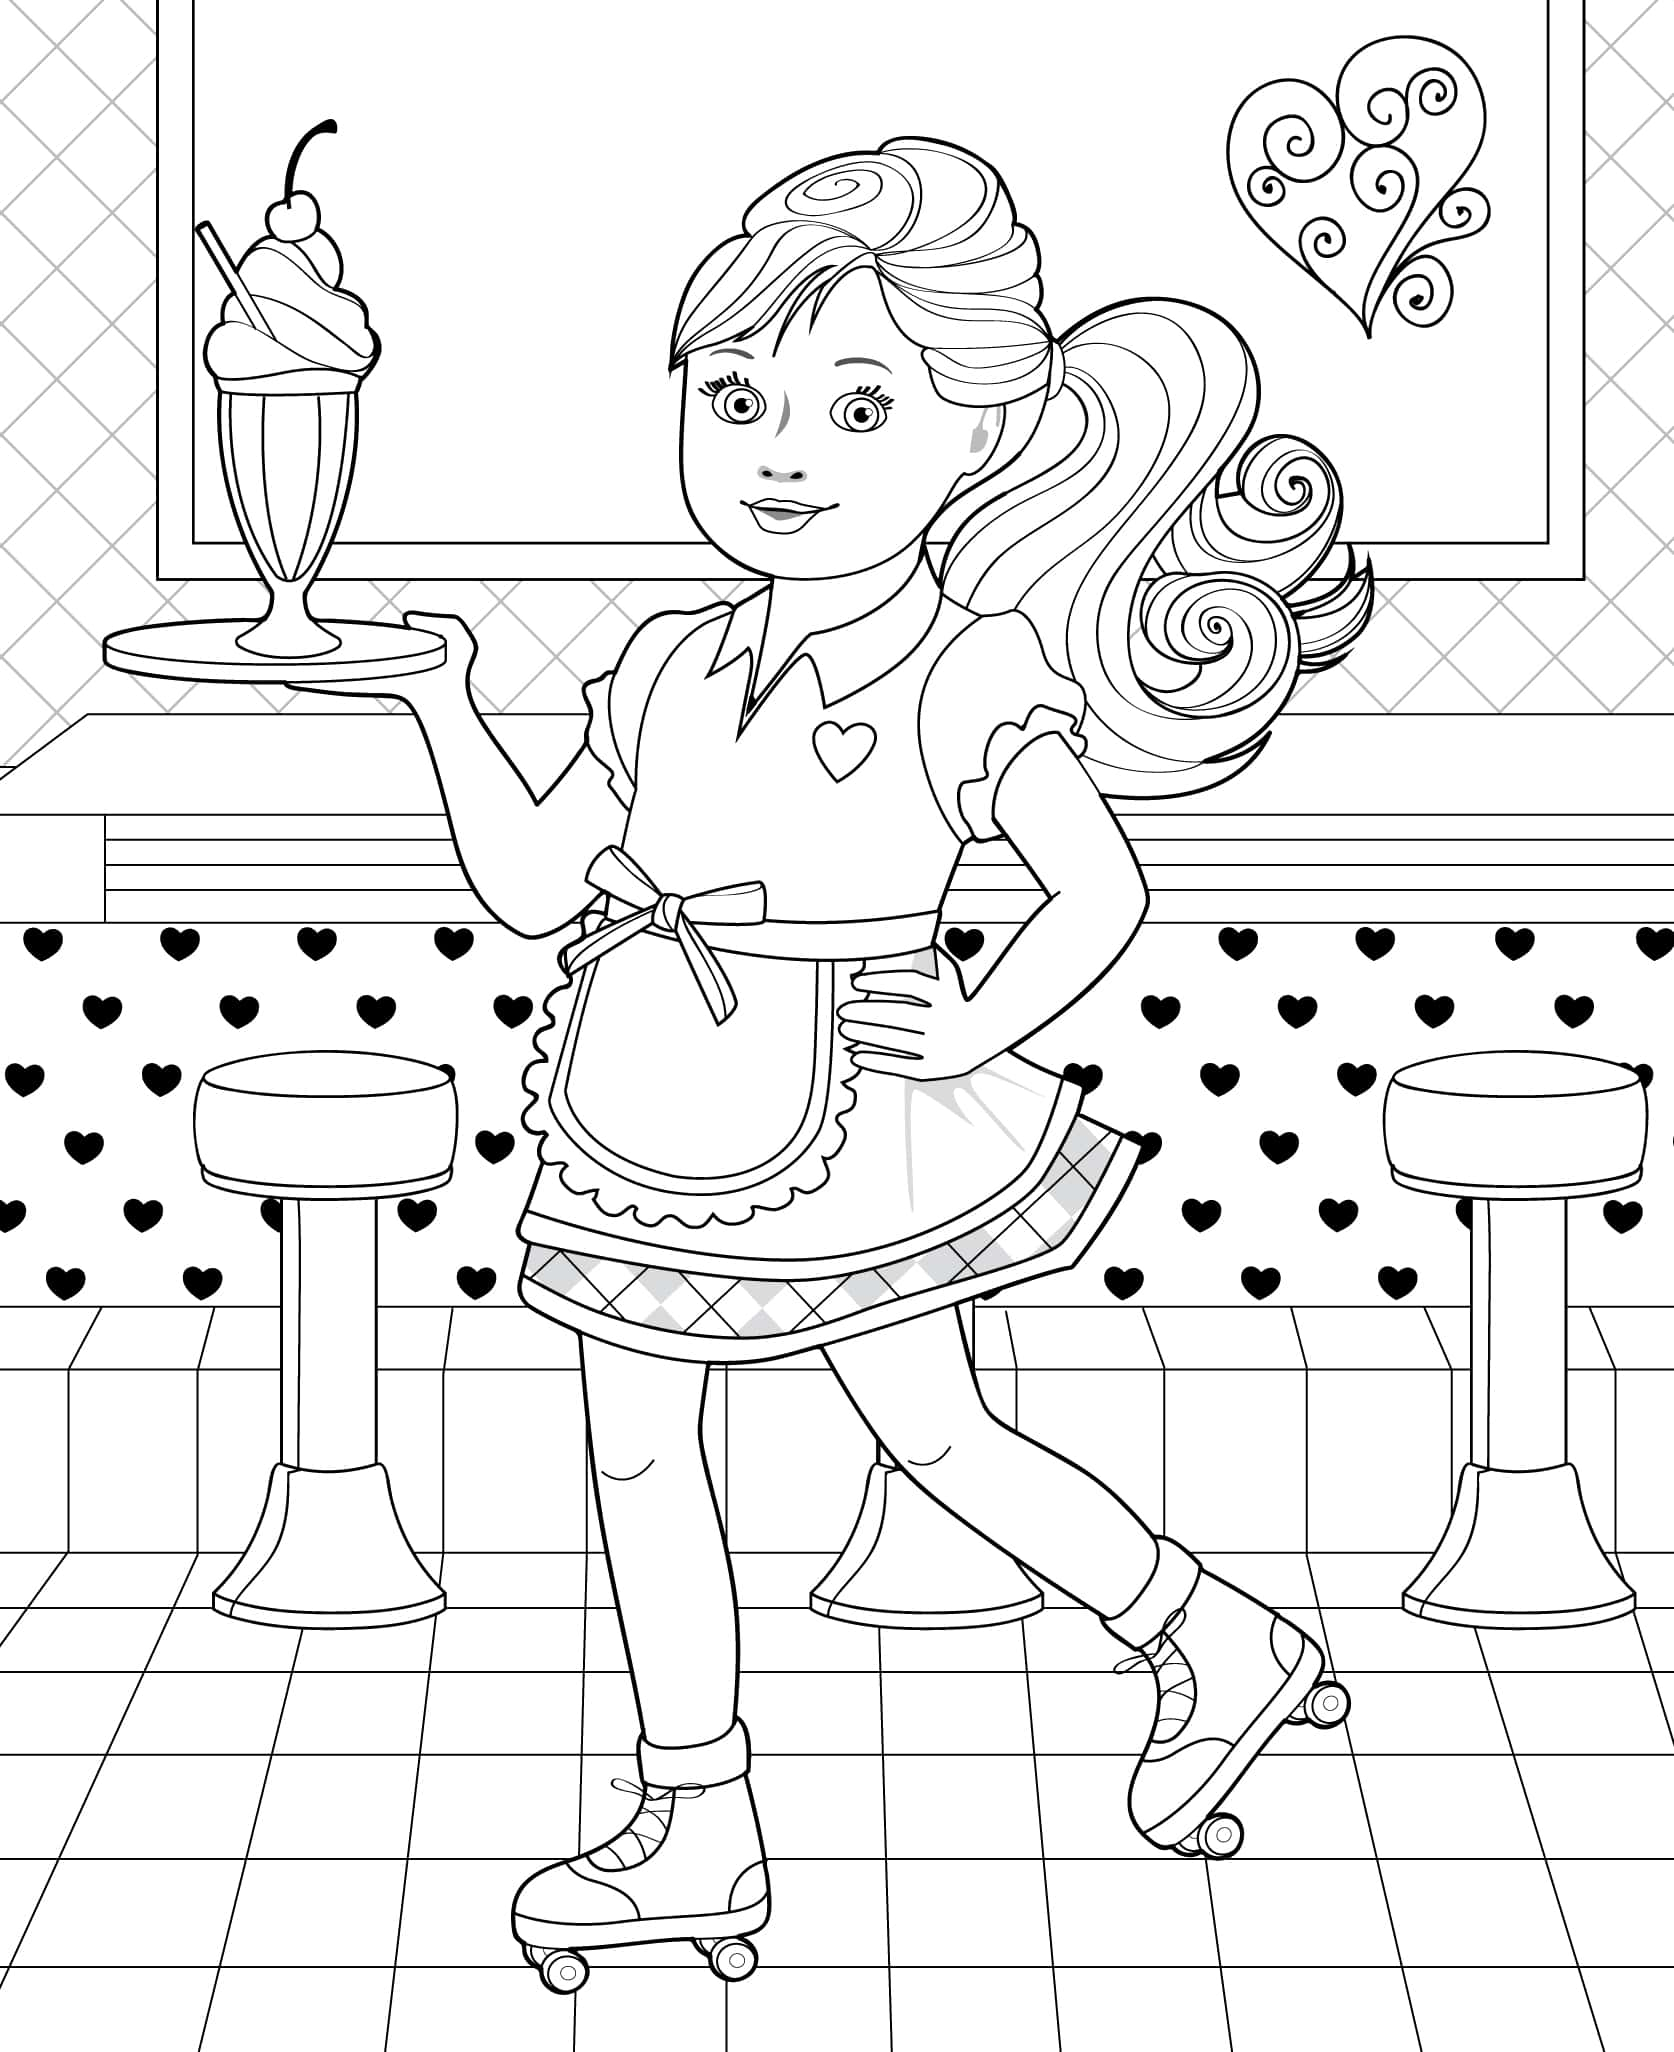 journey girl coloring pages - photo#19